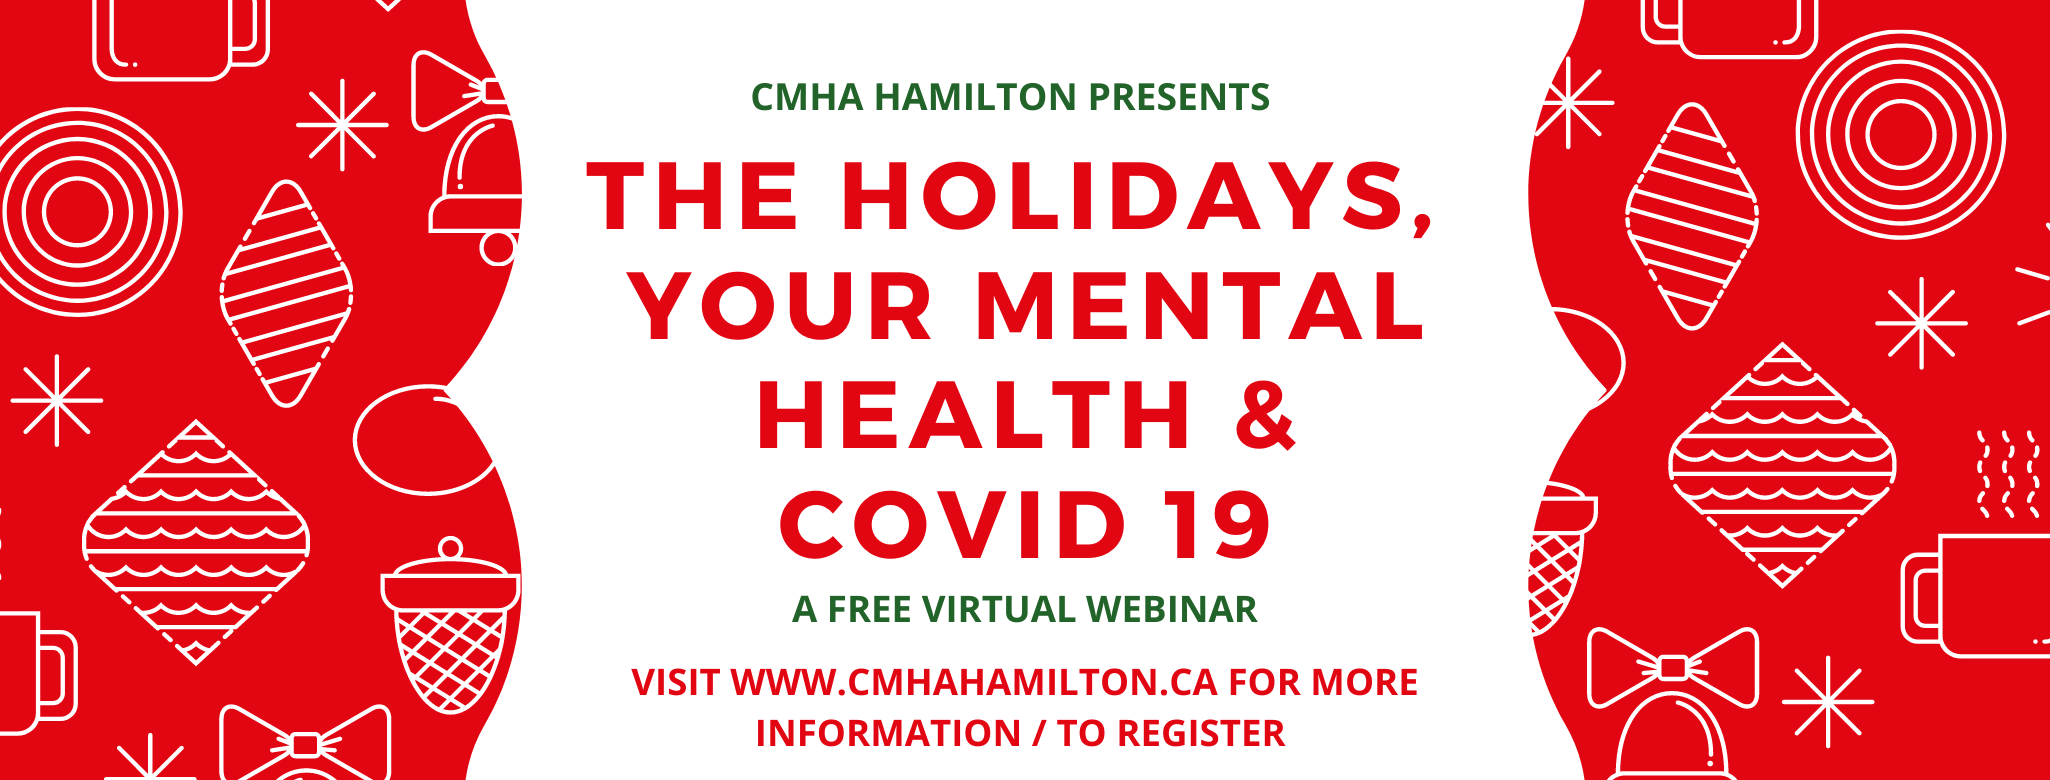 The Holidays, Your Mental Health & COVID-19